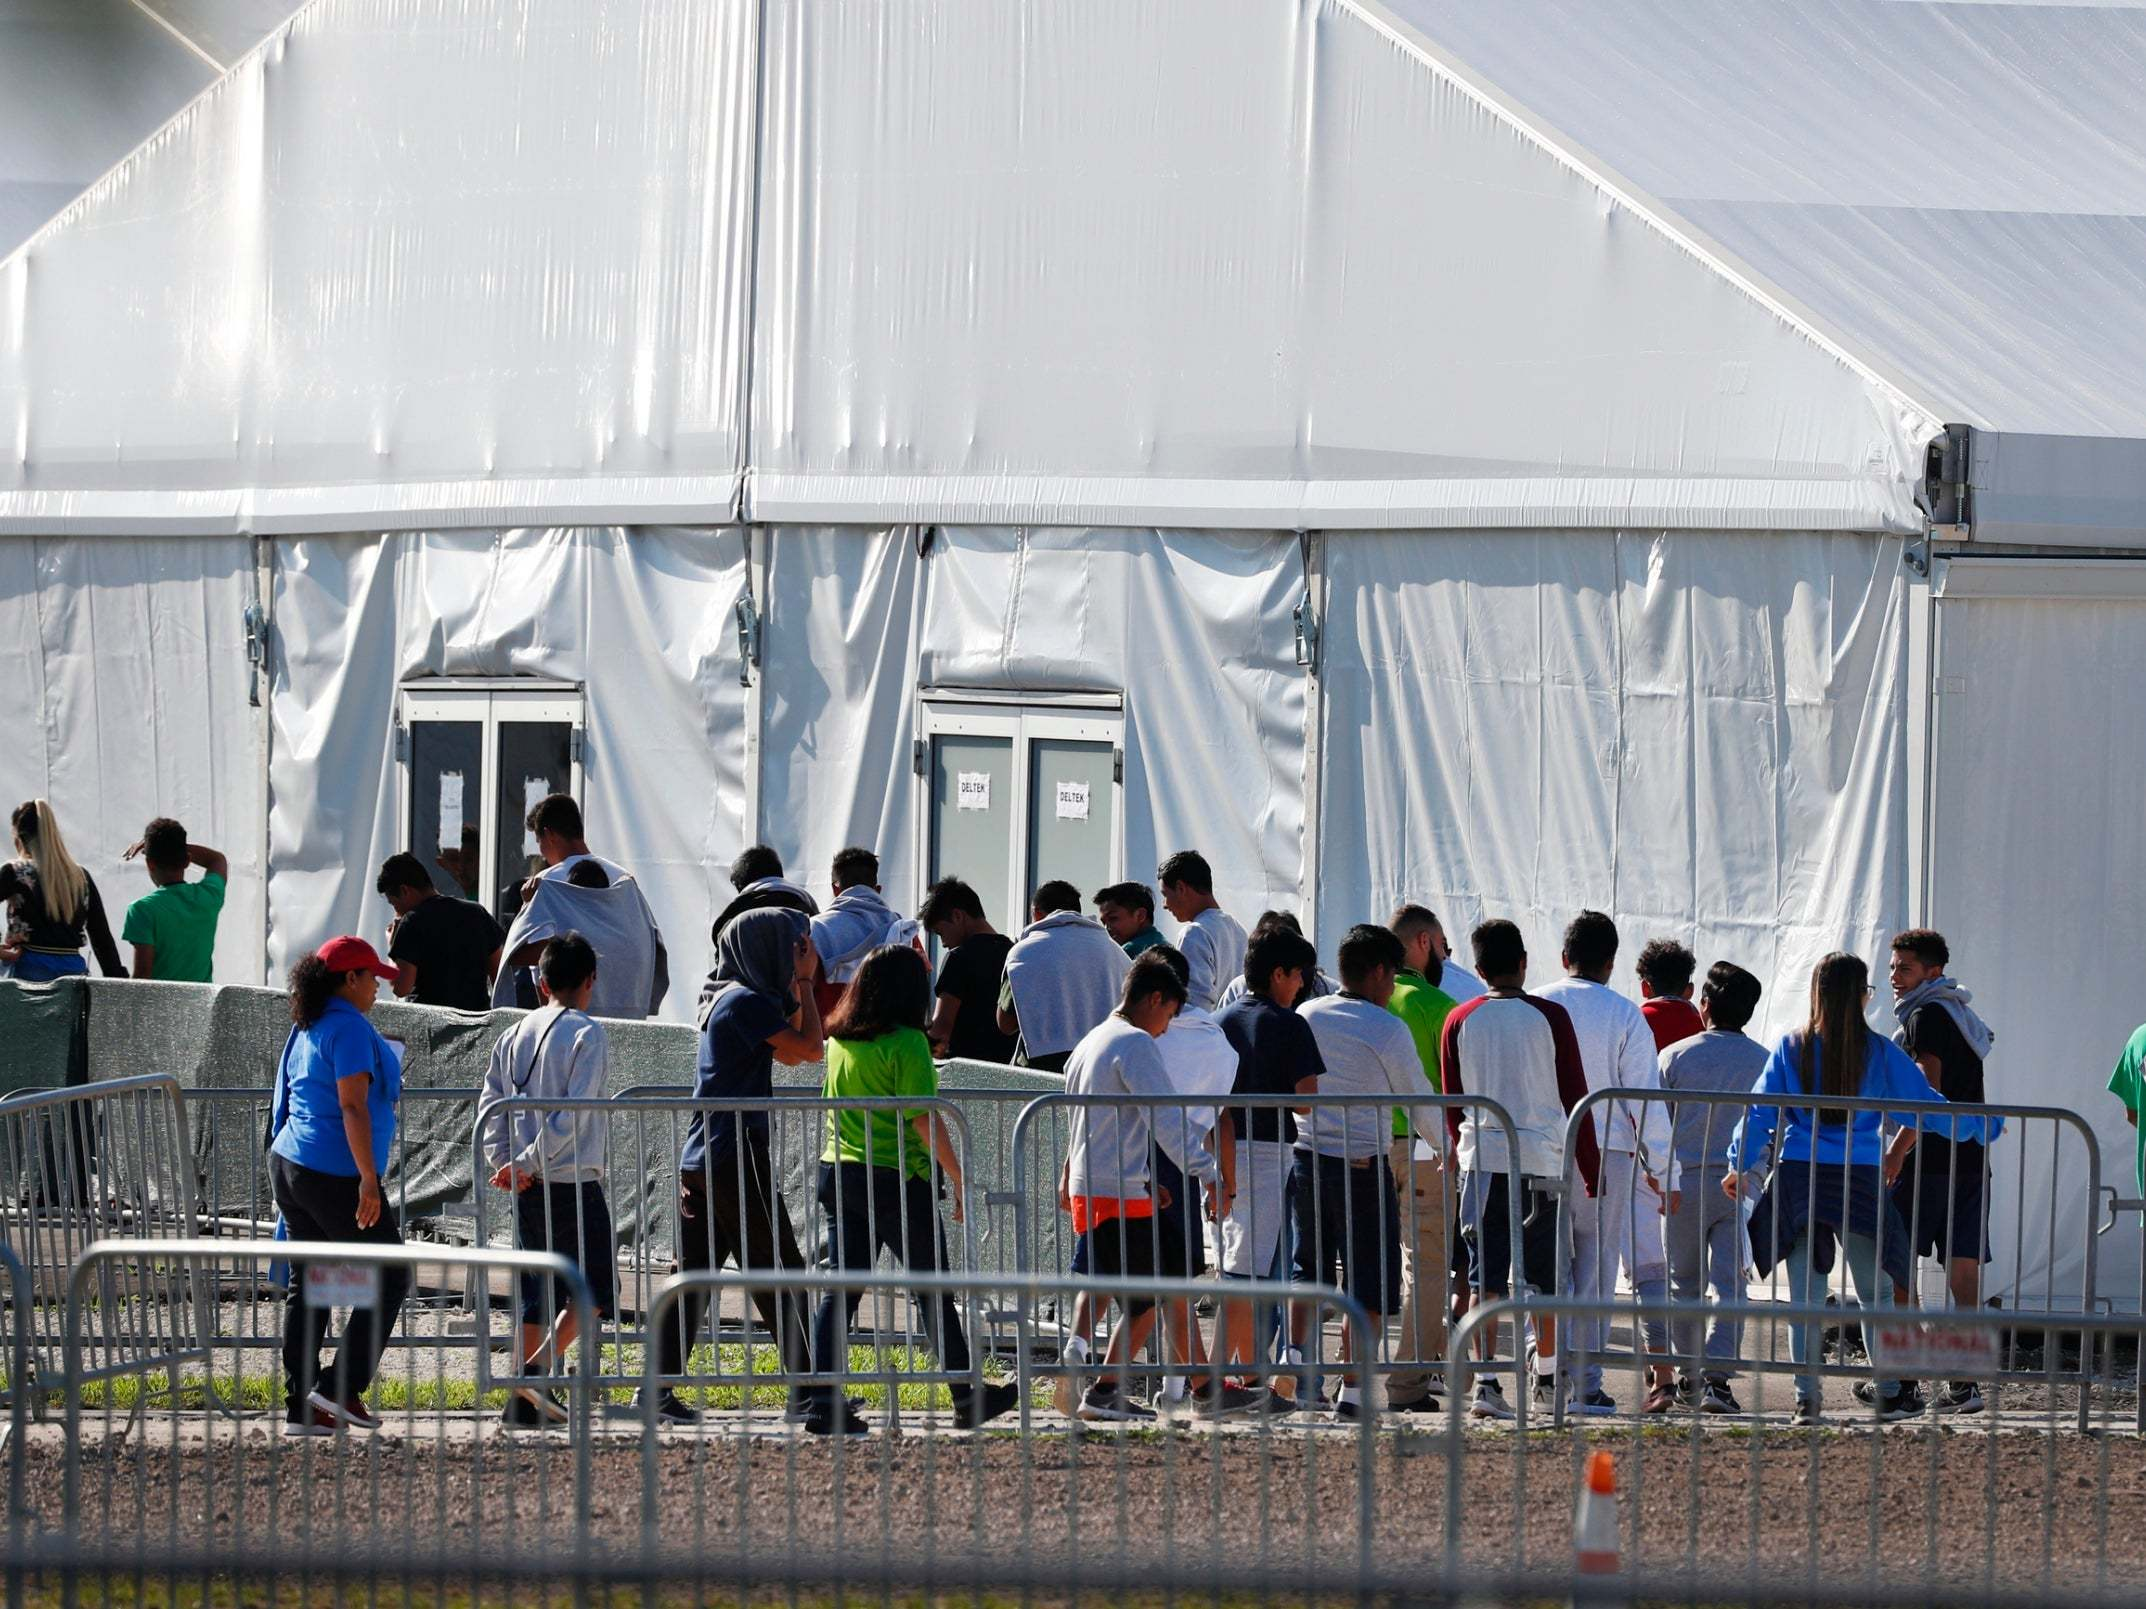 Child migrant detention centre in Florida closed after becoming flashpoint in US immigration debate